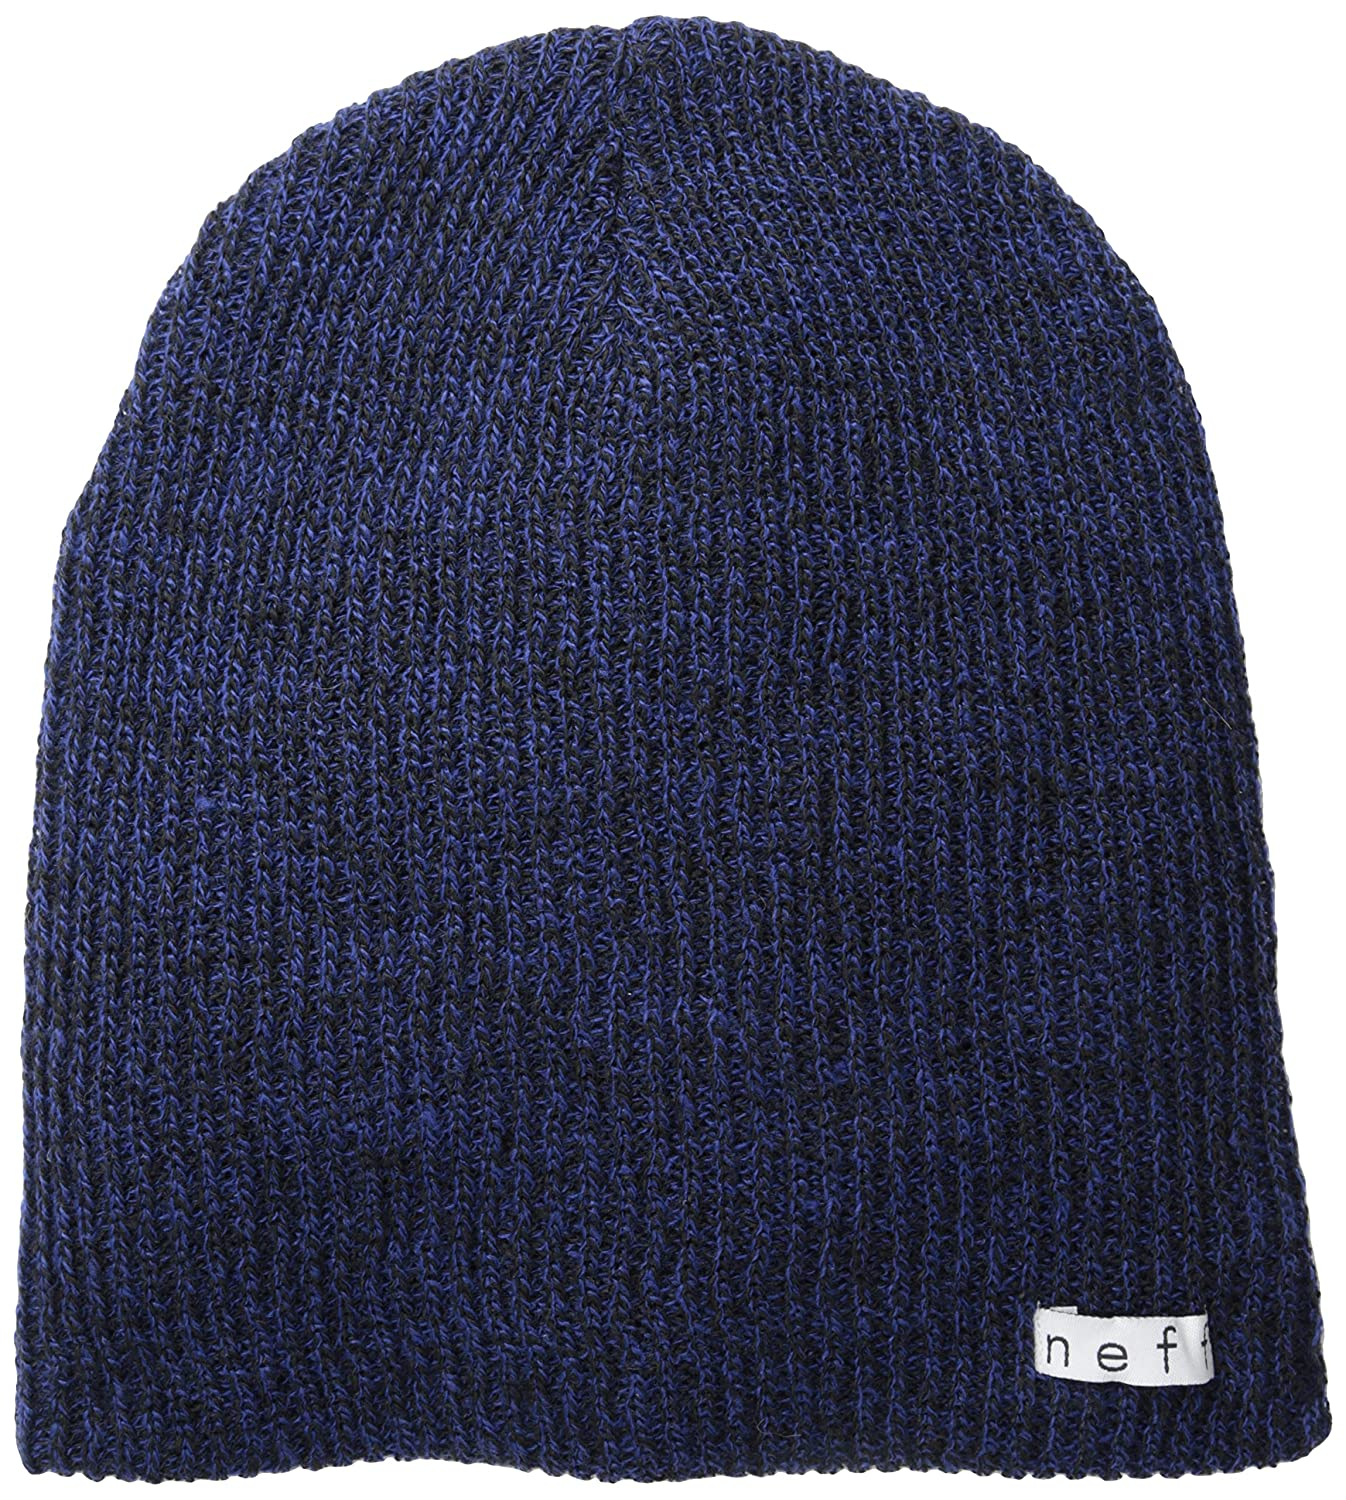 085dfbac8 Neff Daily Heather Beanie Hat for Men and Women